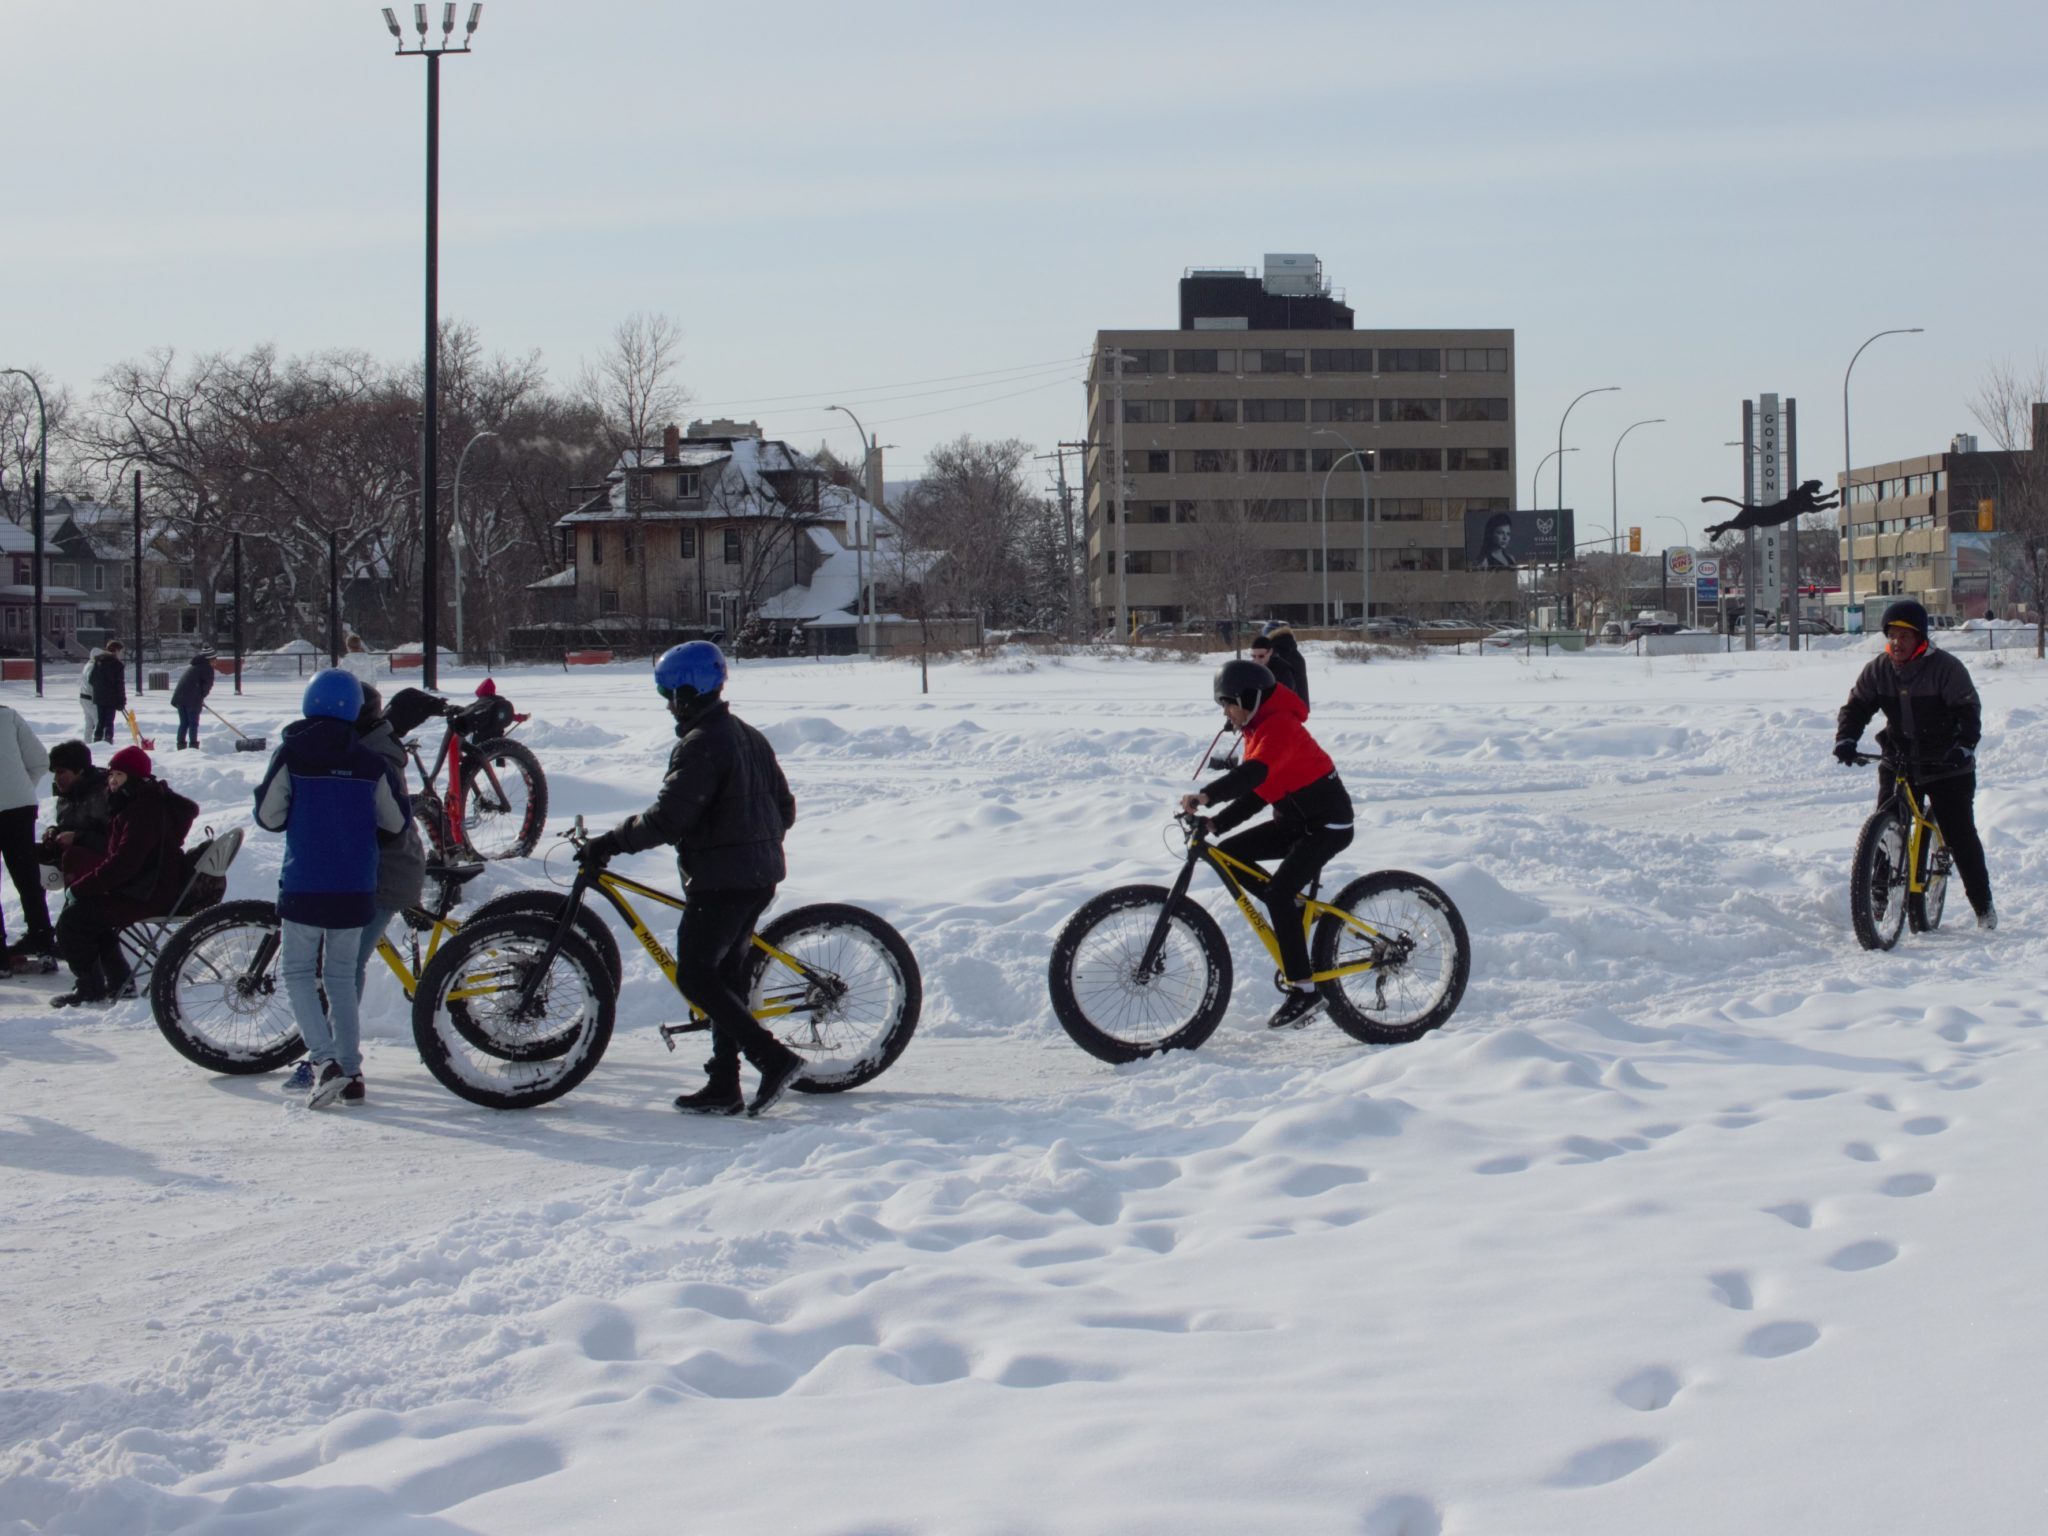 Students riding bicycles through paths cleared in snow on a schoolyard